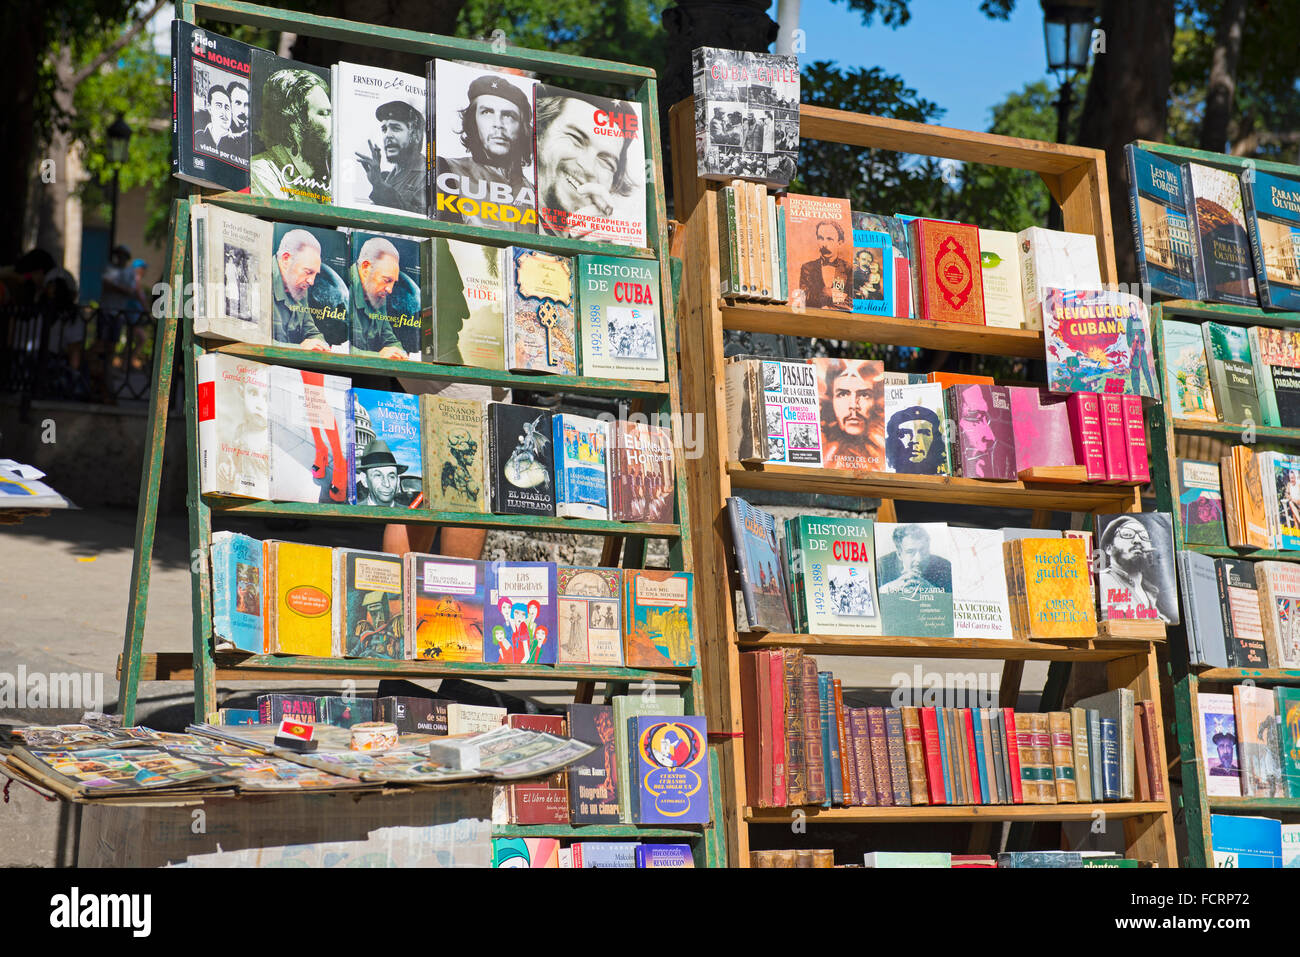 Che Guevara Fidel Castro, Books about, for sale at the Plaza de Armas, Havana Cuba Stock Photo